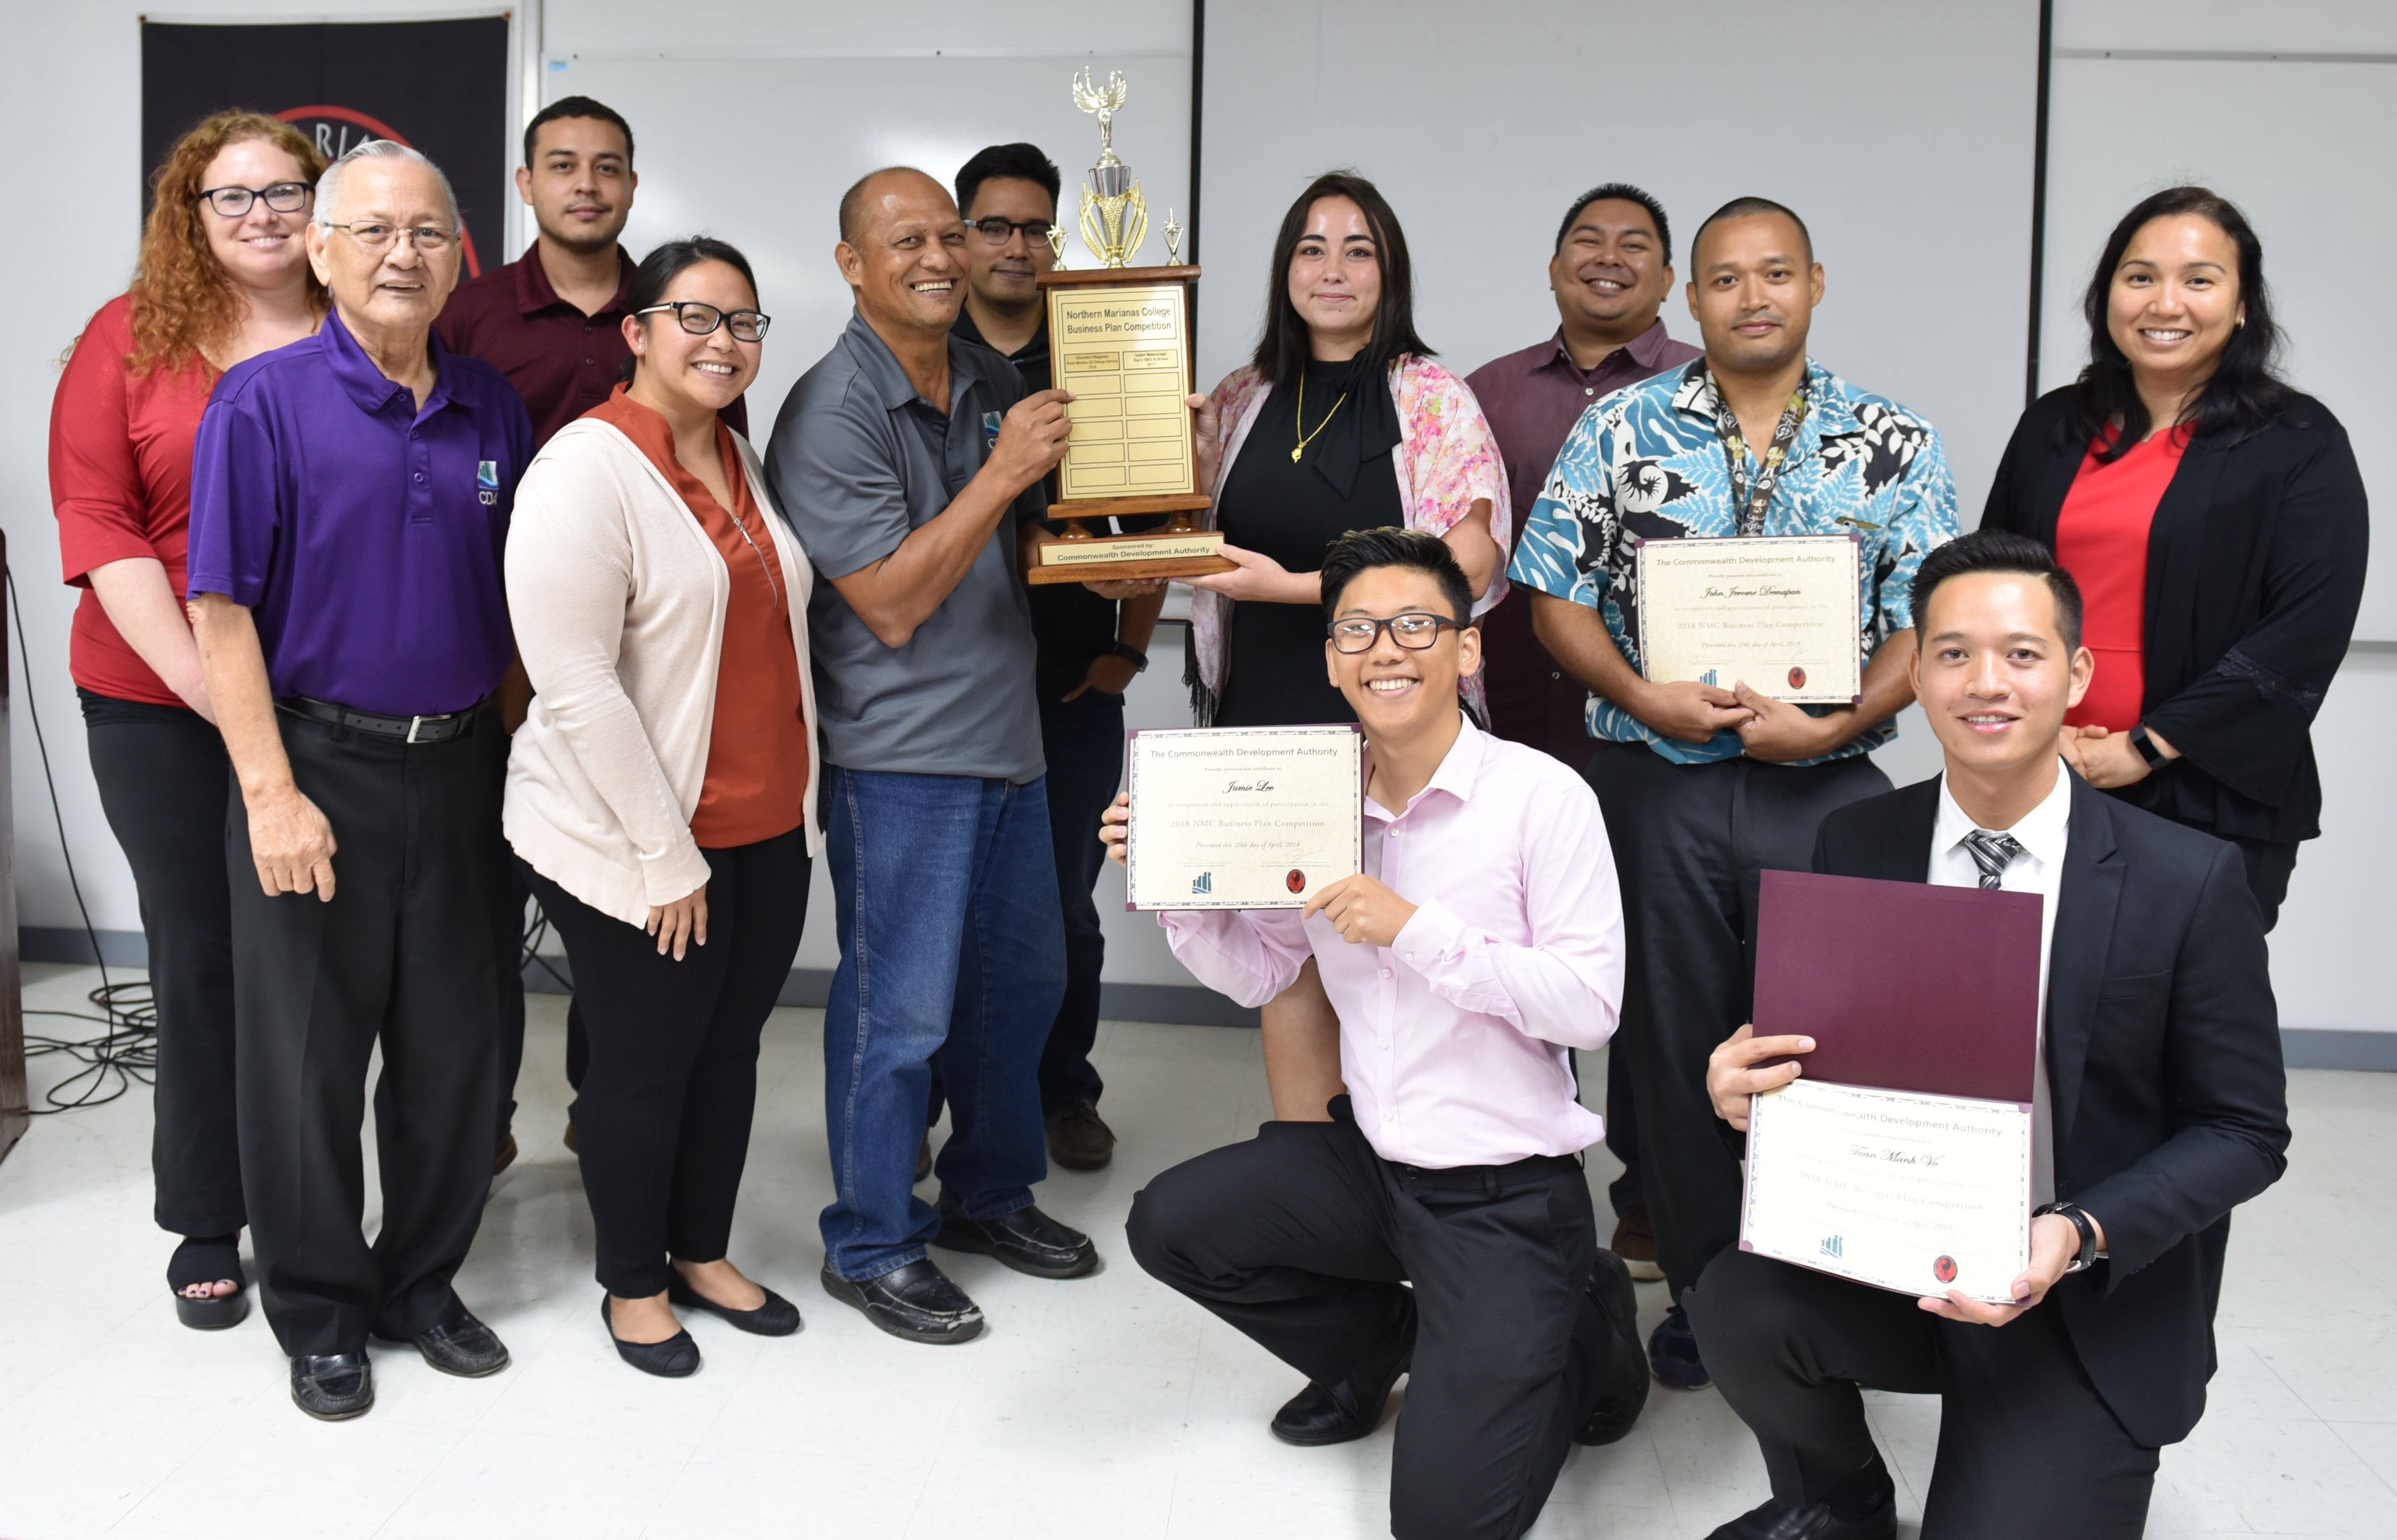 The business plan, written and prepared by Northern Marianas College student Jeane Bracken, earned Bracken a $1,000 scholarship provided by CDA. The competition was held on April 20, 2018.